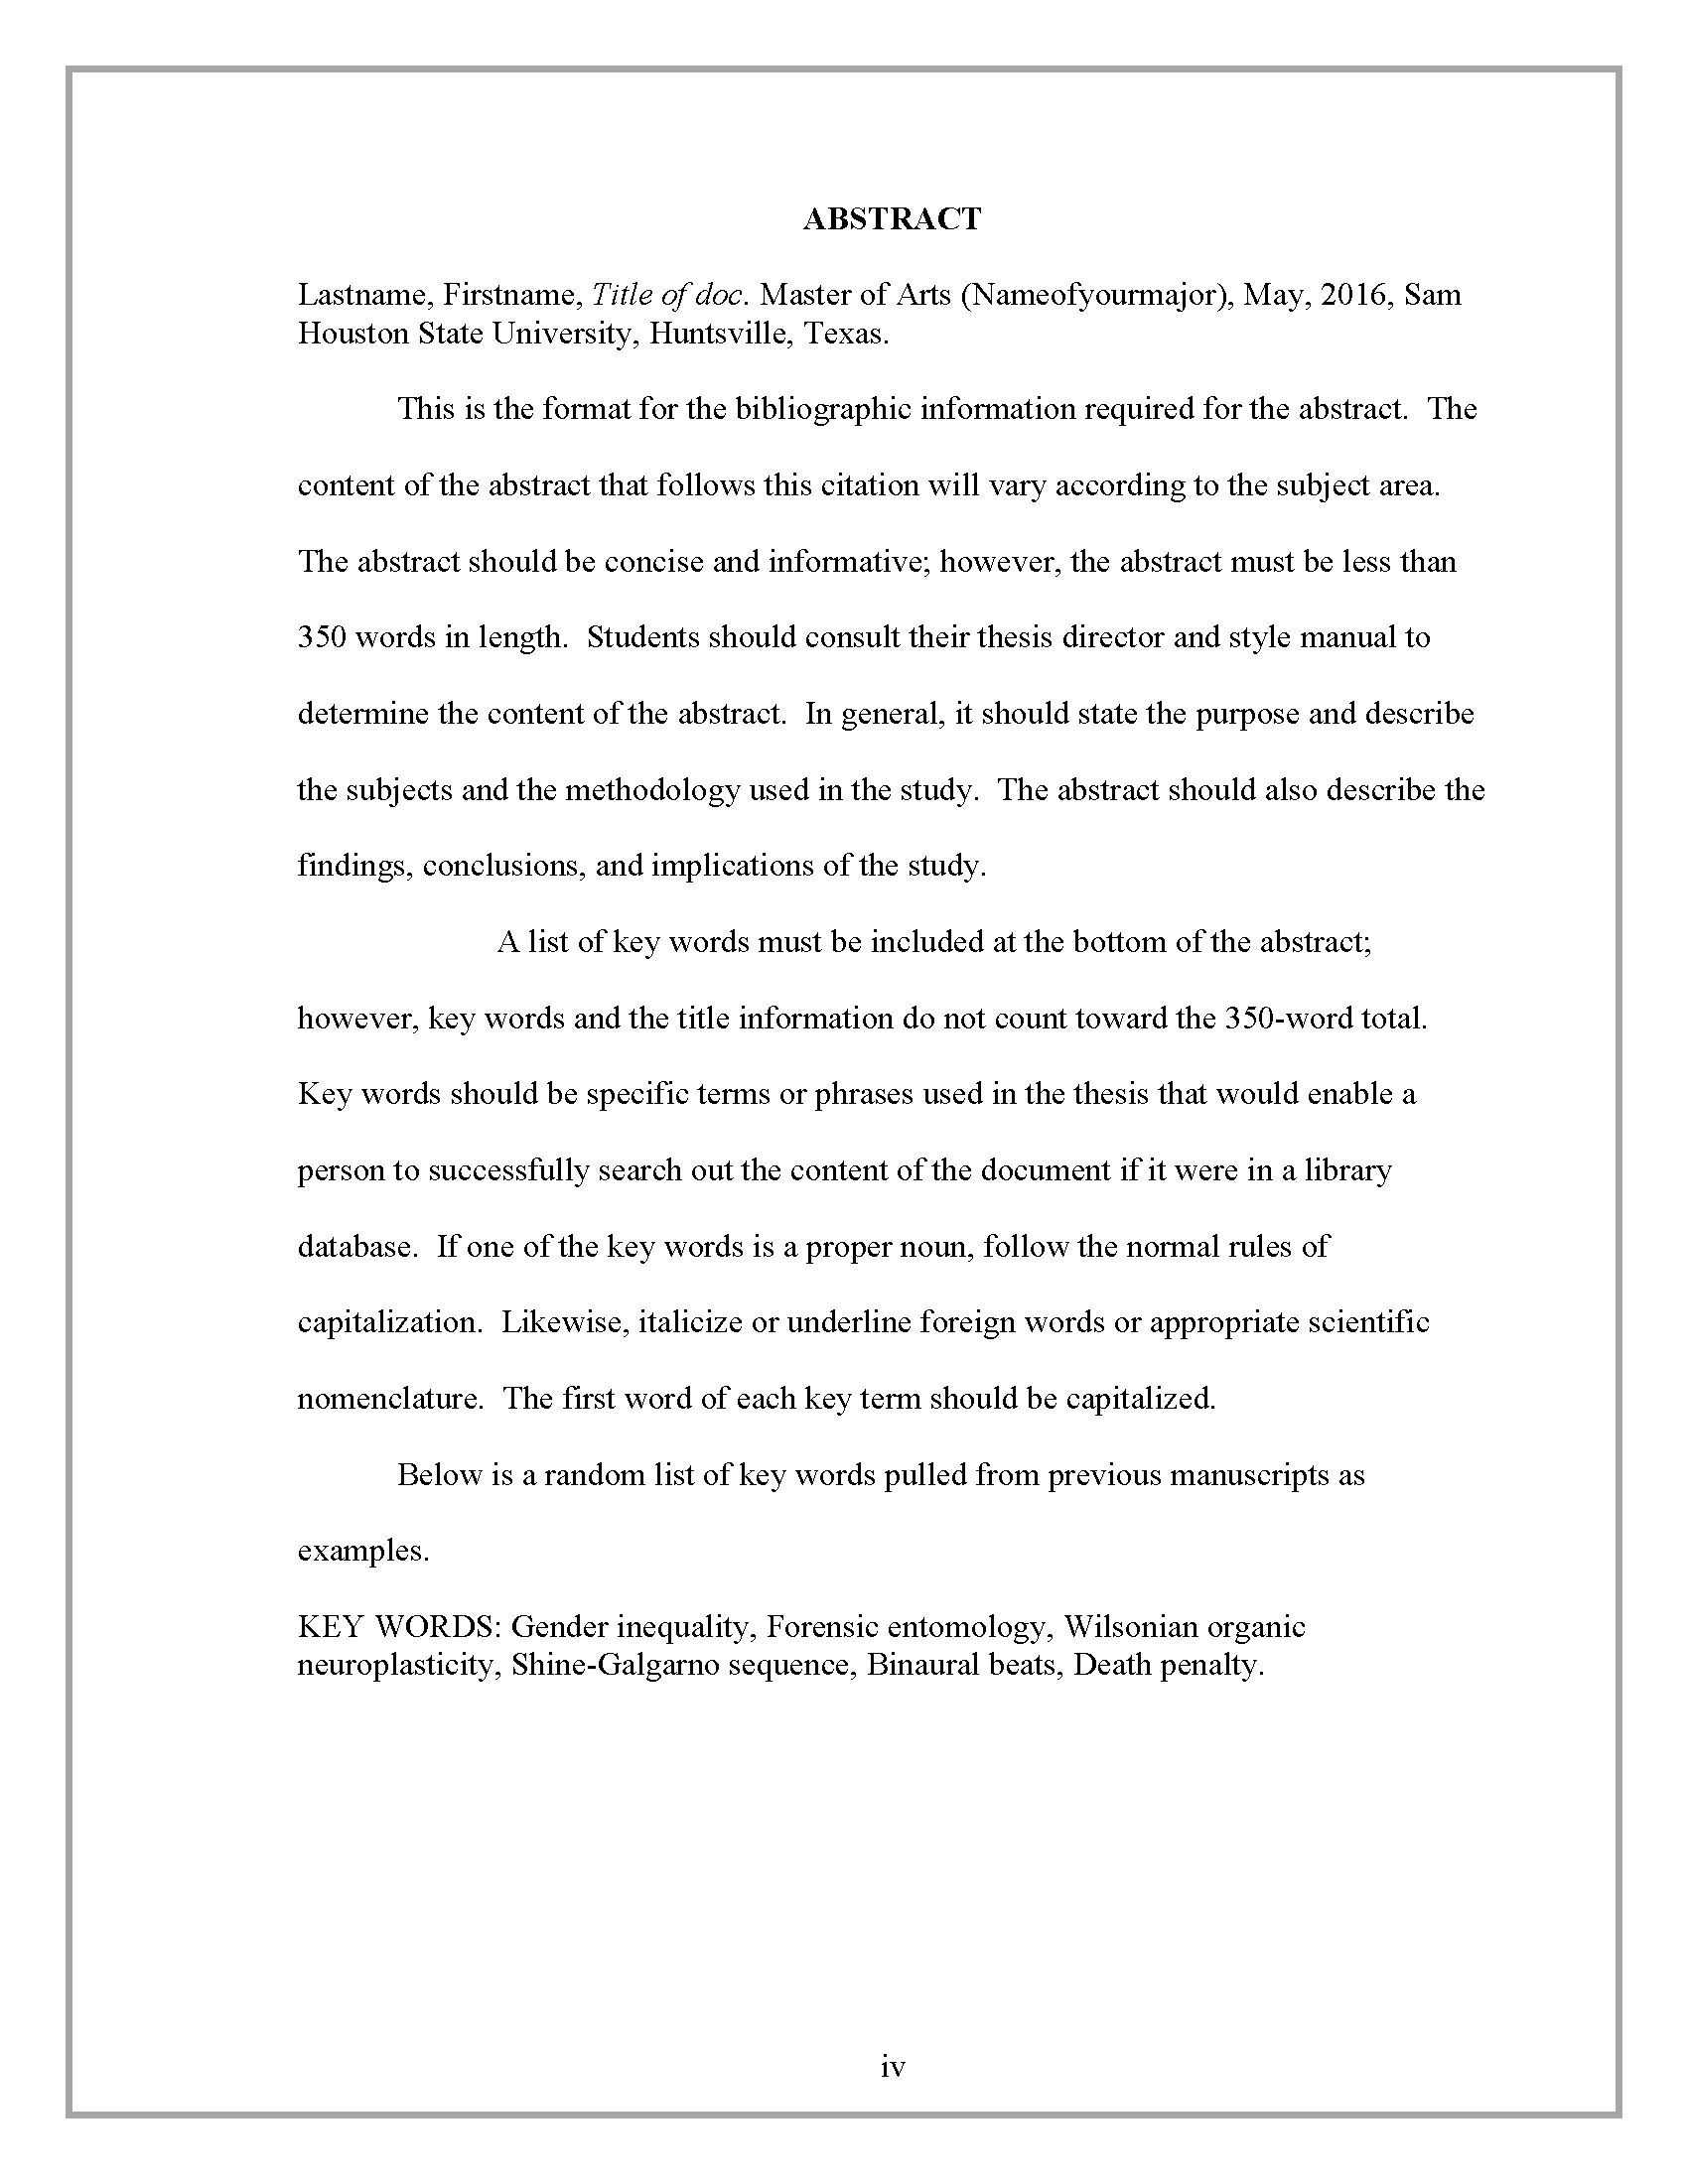 001 Abstract Border Research Paper Rare Template Full